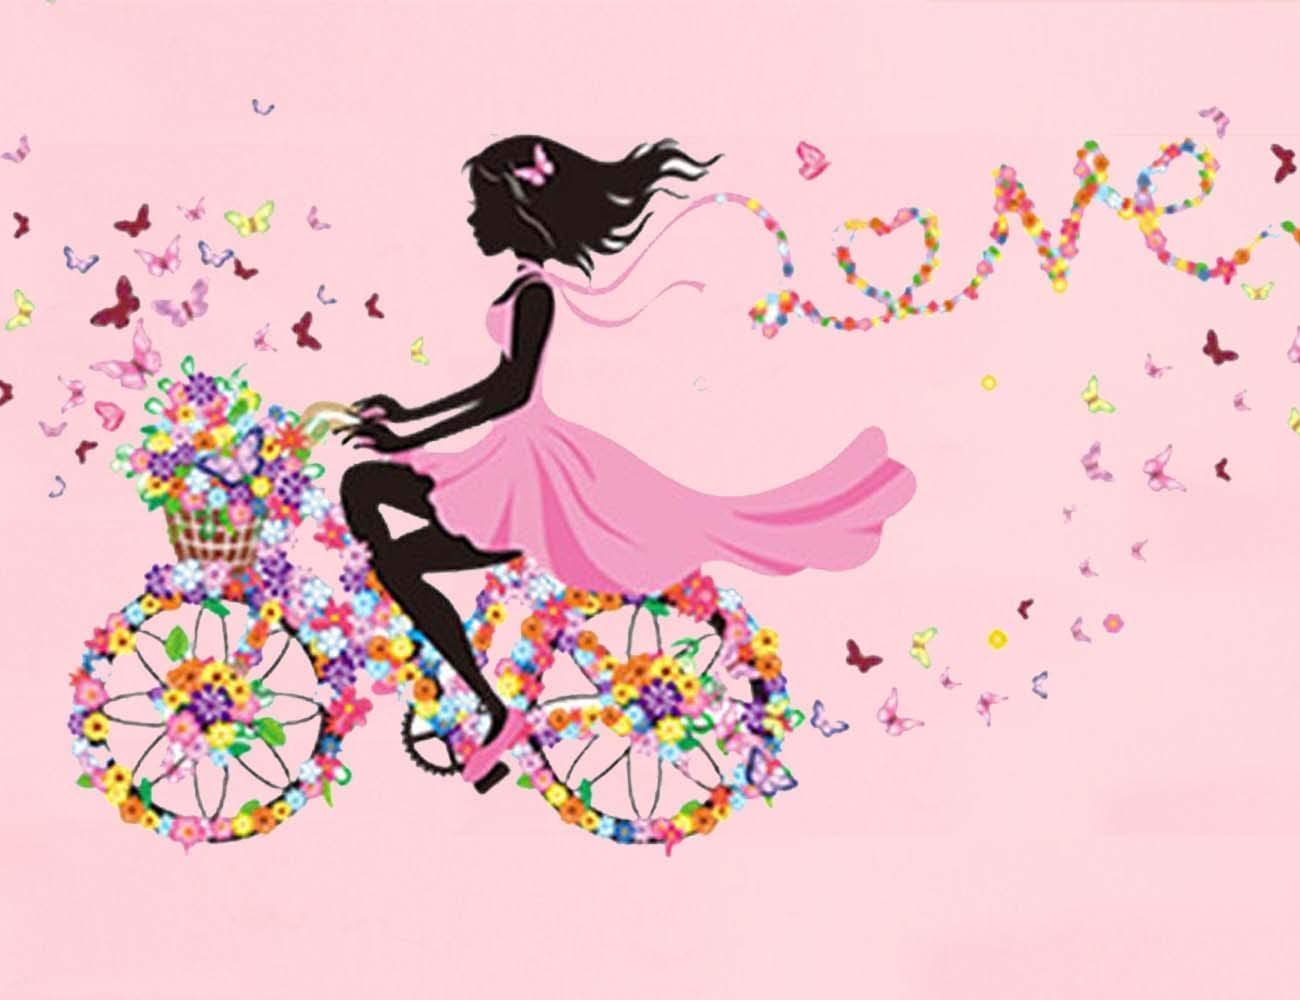 Girl Bicycle Butterfly Wall Decal, Girl Riding Bicycle With Butterfly Wall Sticker, Peel and Stick Removable Flower Fairy Wall Stickers Wall Mural for Kids Girls Nursery Bedroom Living Room Home Decor